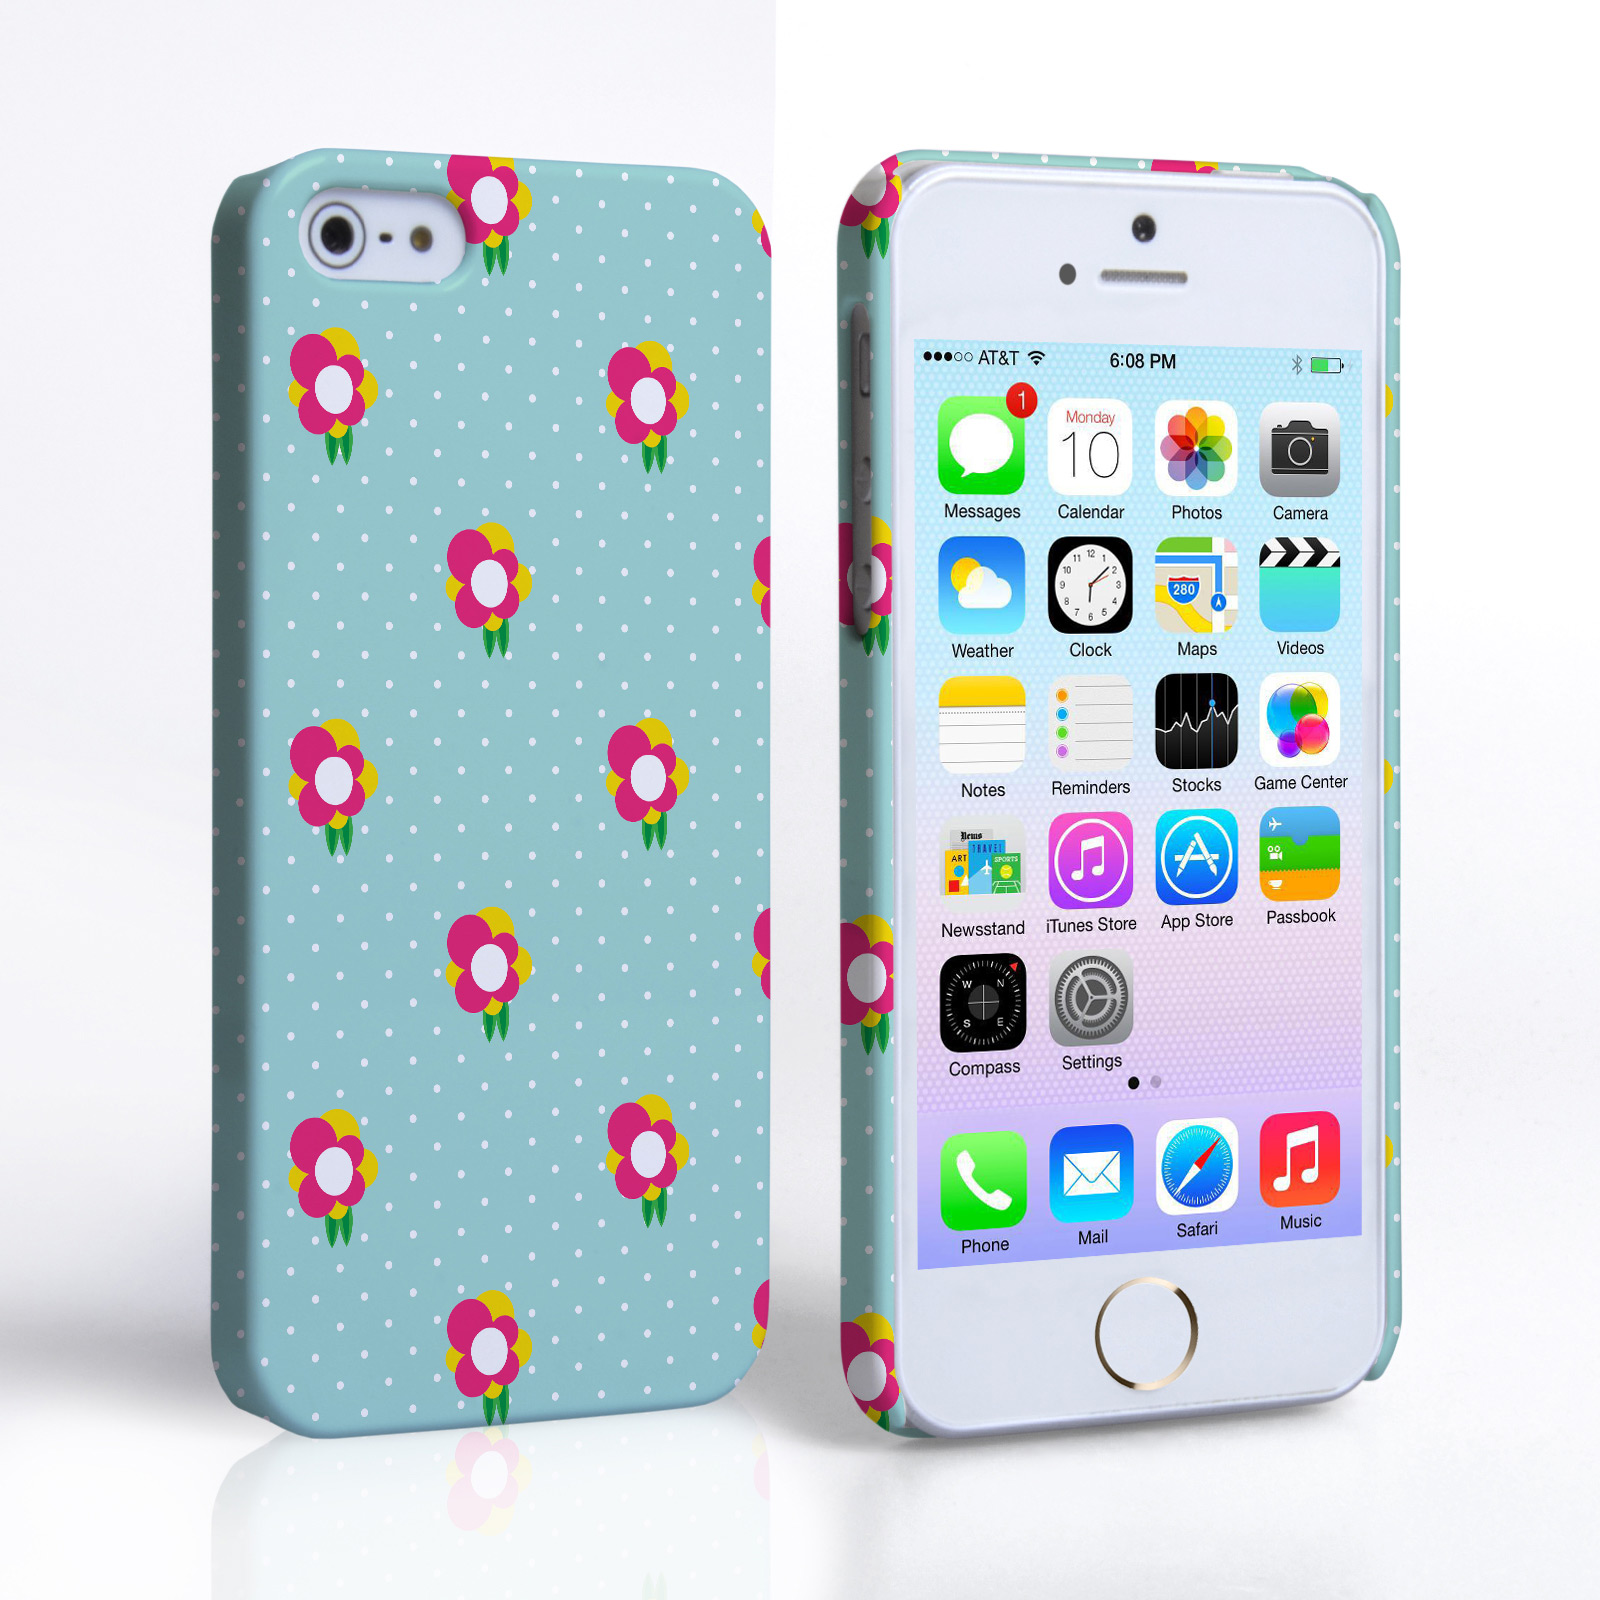 Caseflex iPhone 5 / 5S Grey and Pink Dainty Dots and Flowers Hard Case